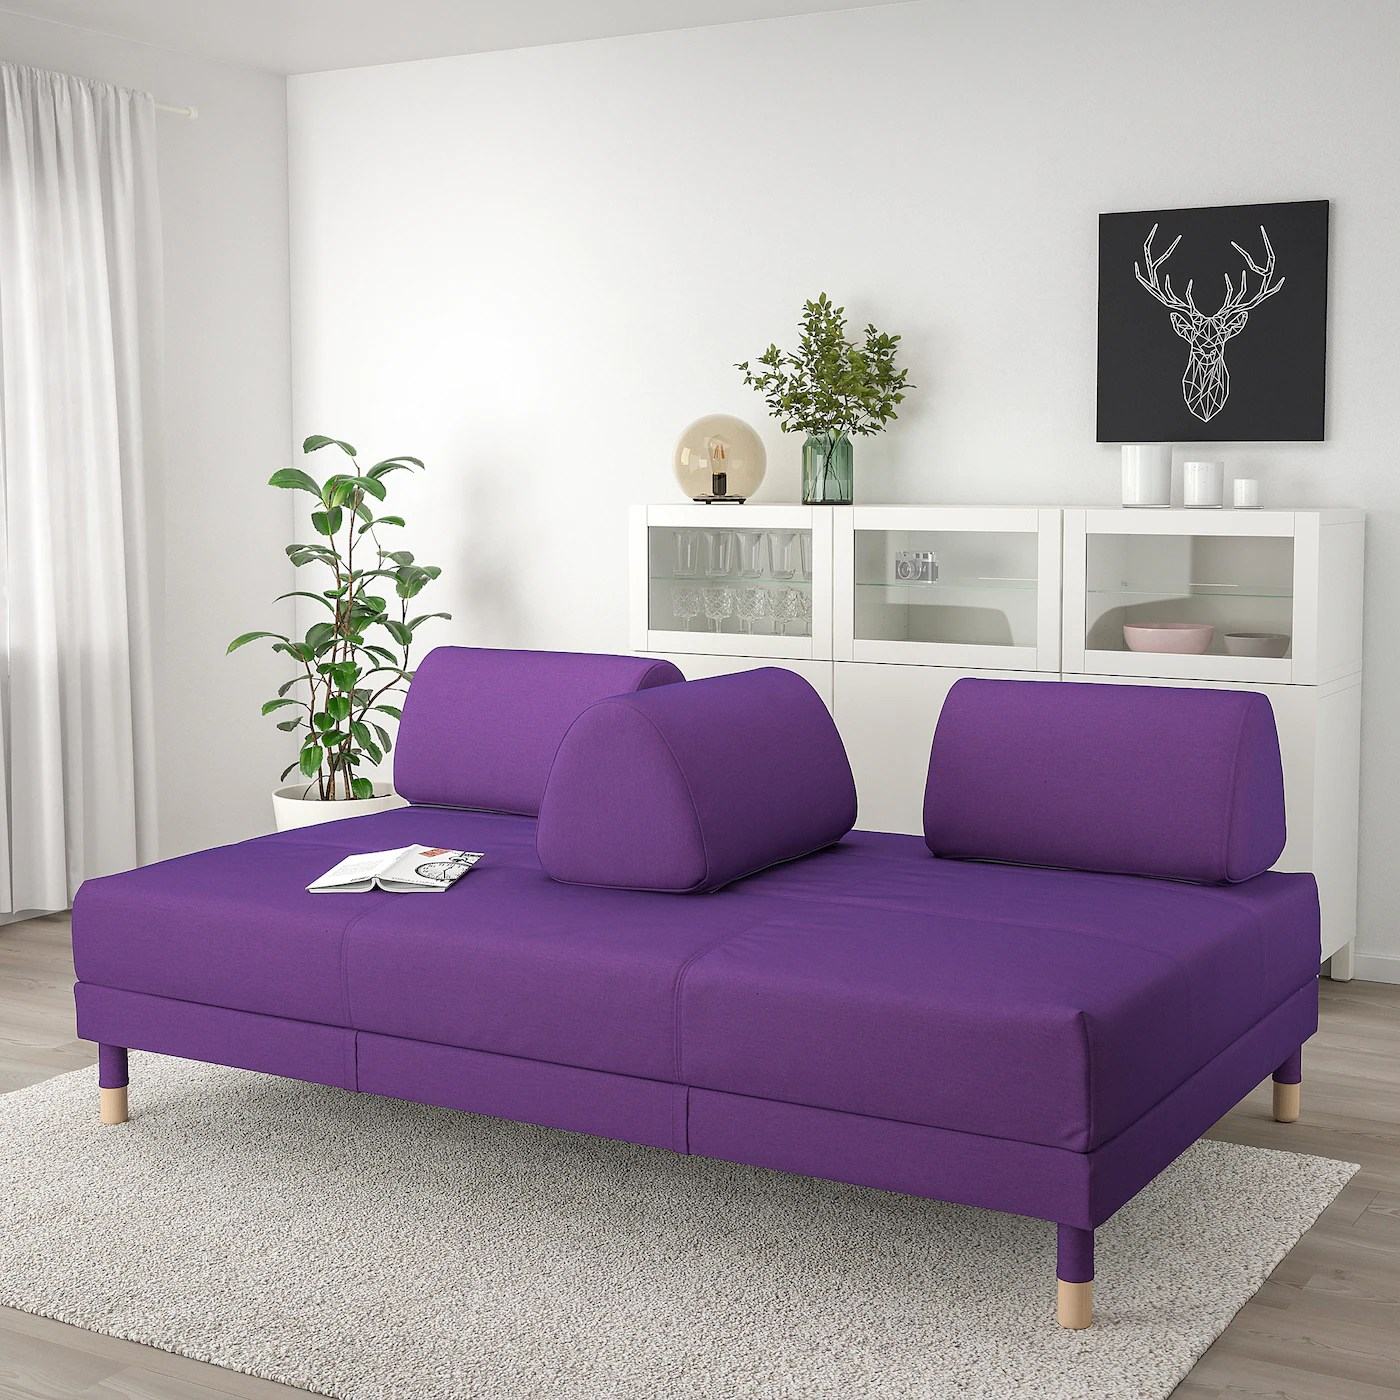 Flottebo Sleeper Sofa Vissle Purple 47 1 4